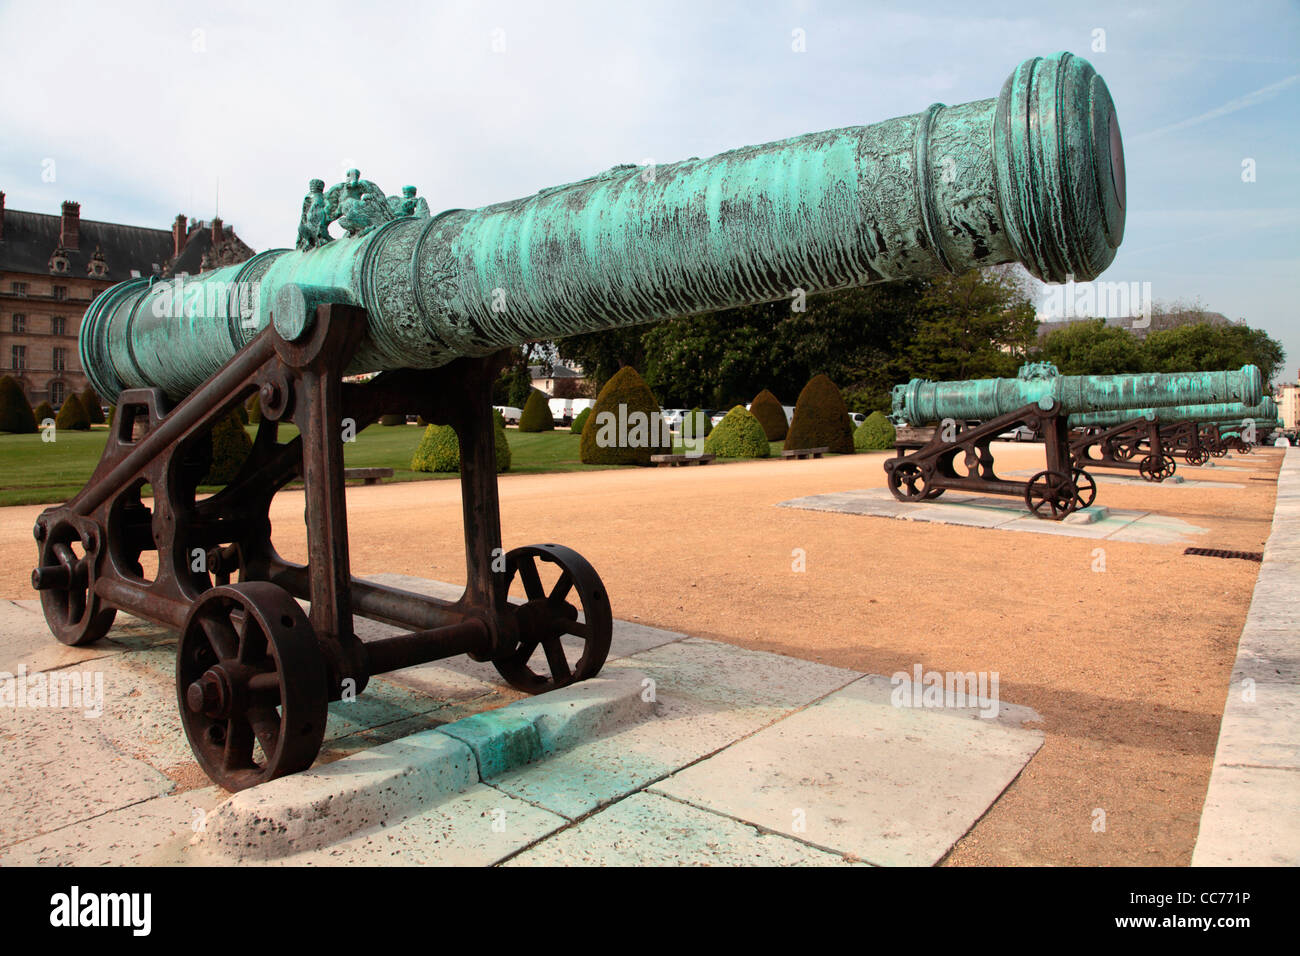 France, Paris, Cannons display in the entrance of Hotel de Invalides - Stock Image